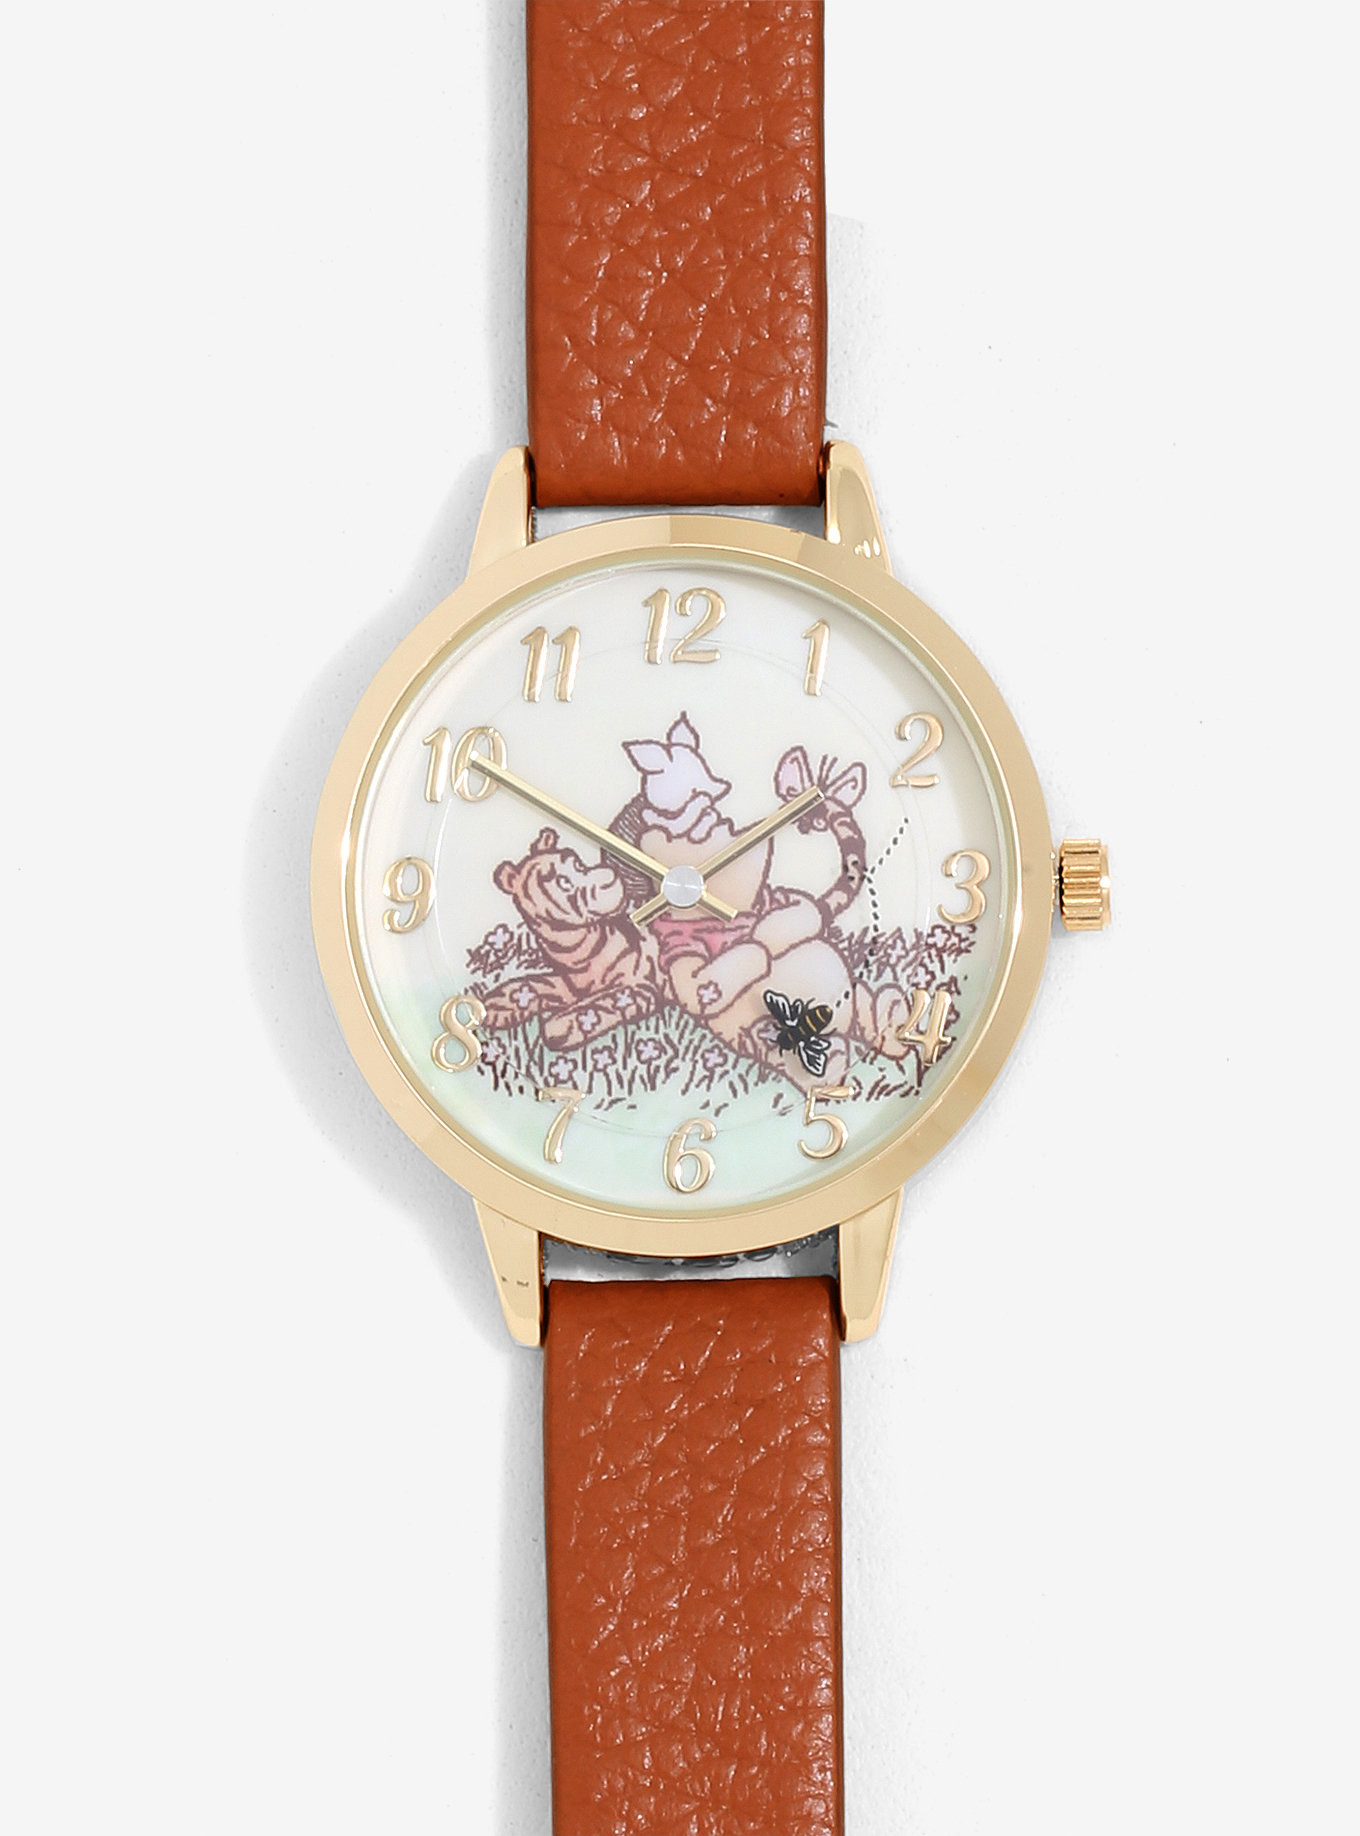 the watch with the book version of pooh, piglet, and tigger inside the watch face